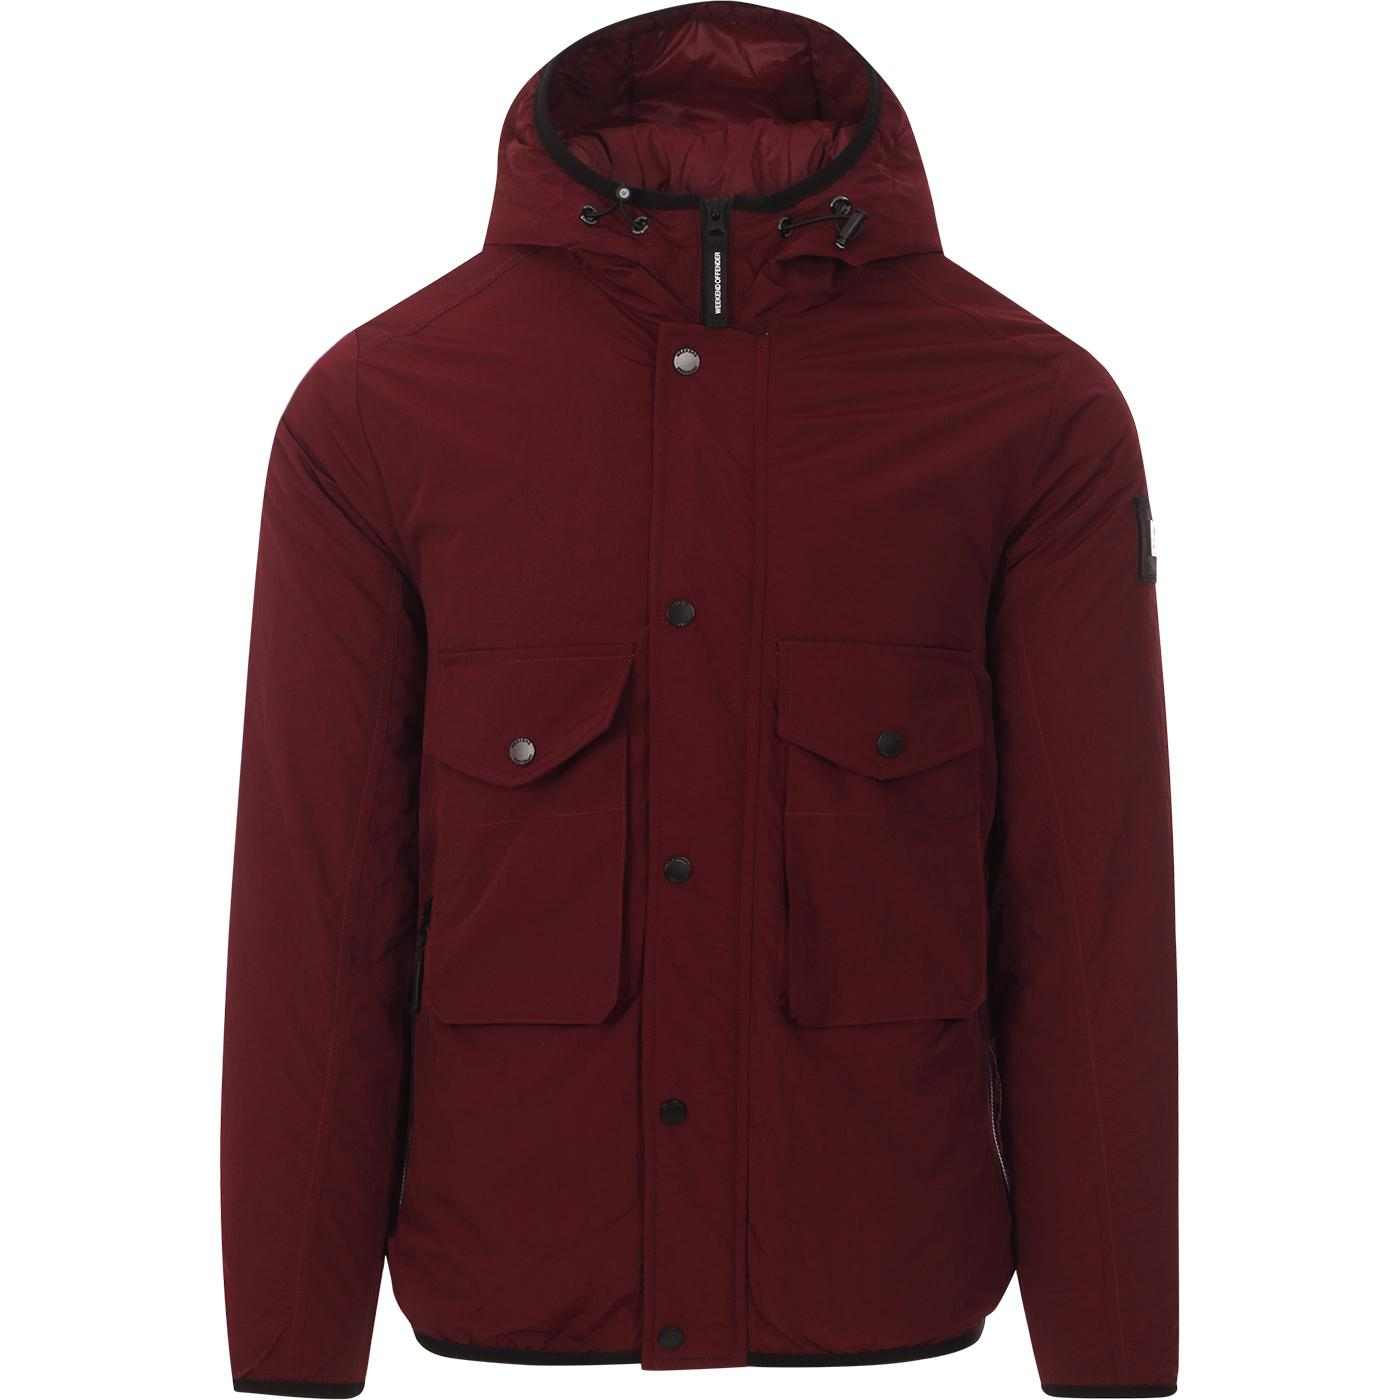 Salinas WEEKEND OFFENDER Retro Hooded Jacket (Bu)